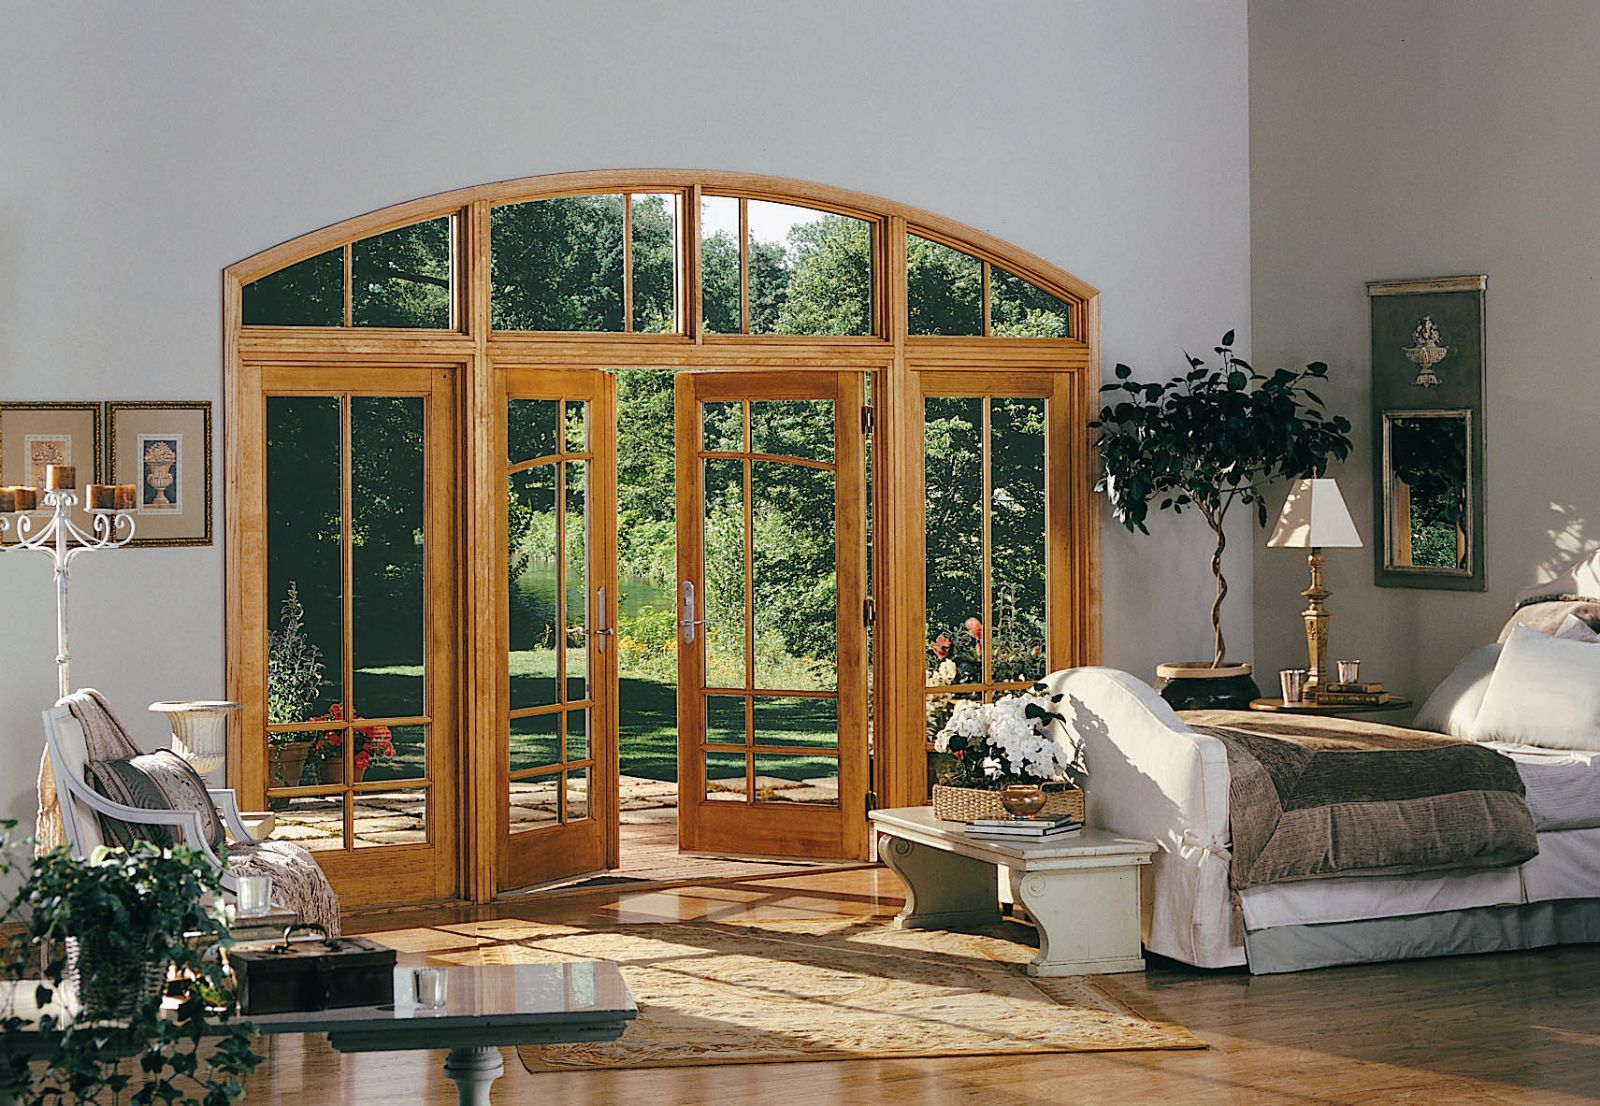 This #Marvin #FrenchDoors with matching full-length windows and ...